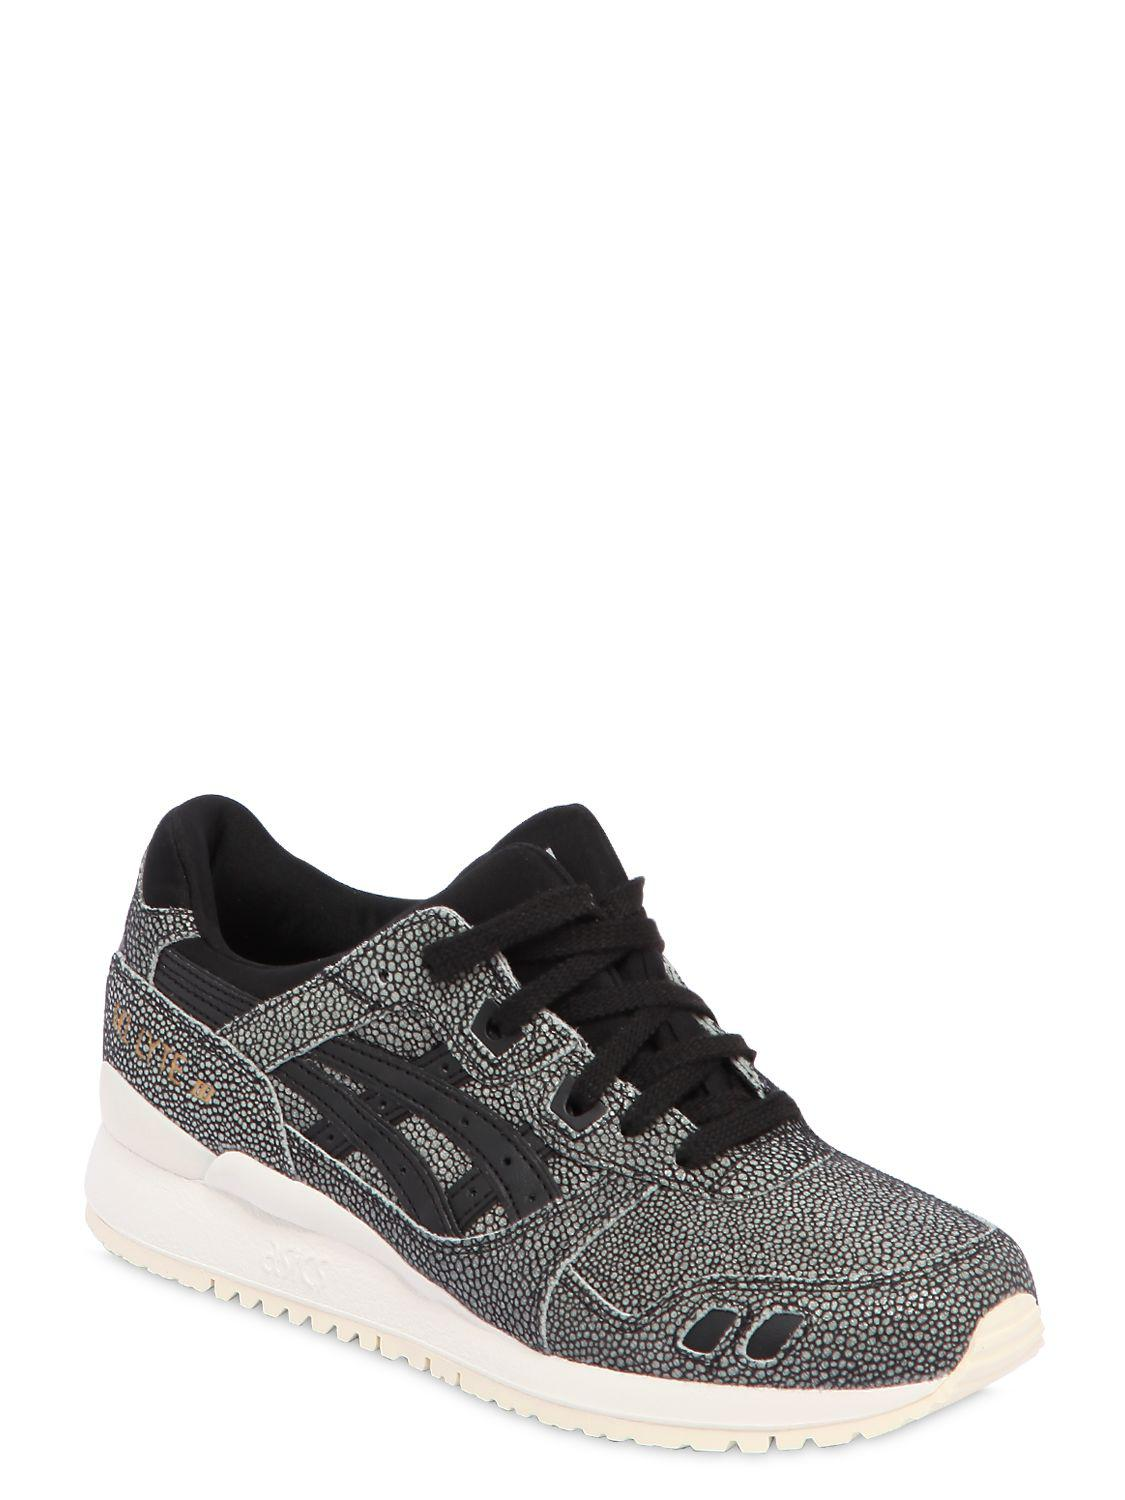 a9206835e590 Lyst - Asics Women s Gel-lyte Iii Leather Trainers in Black - Save 60%